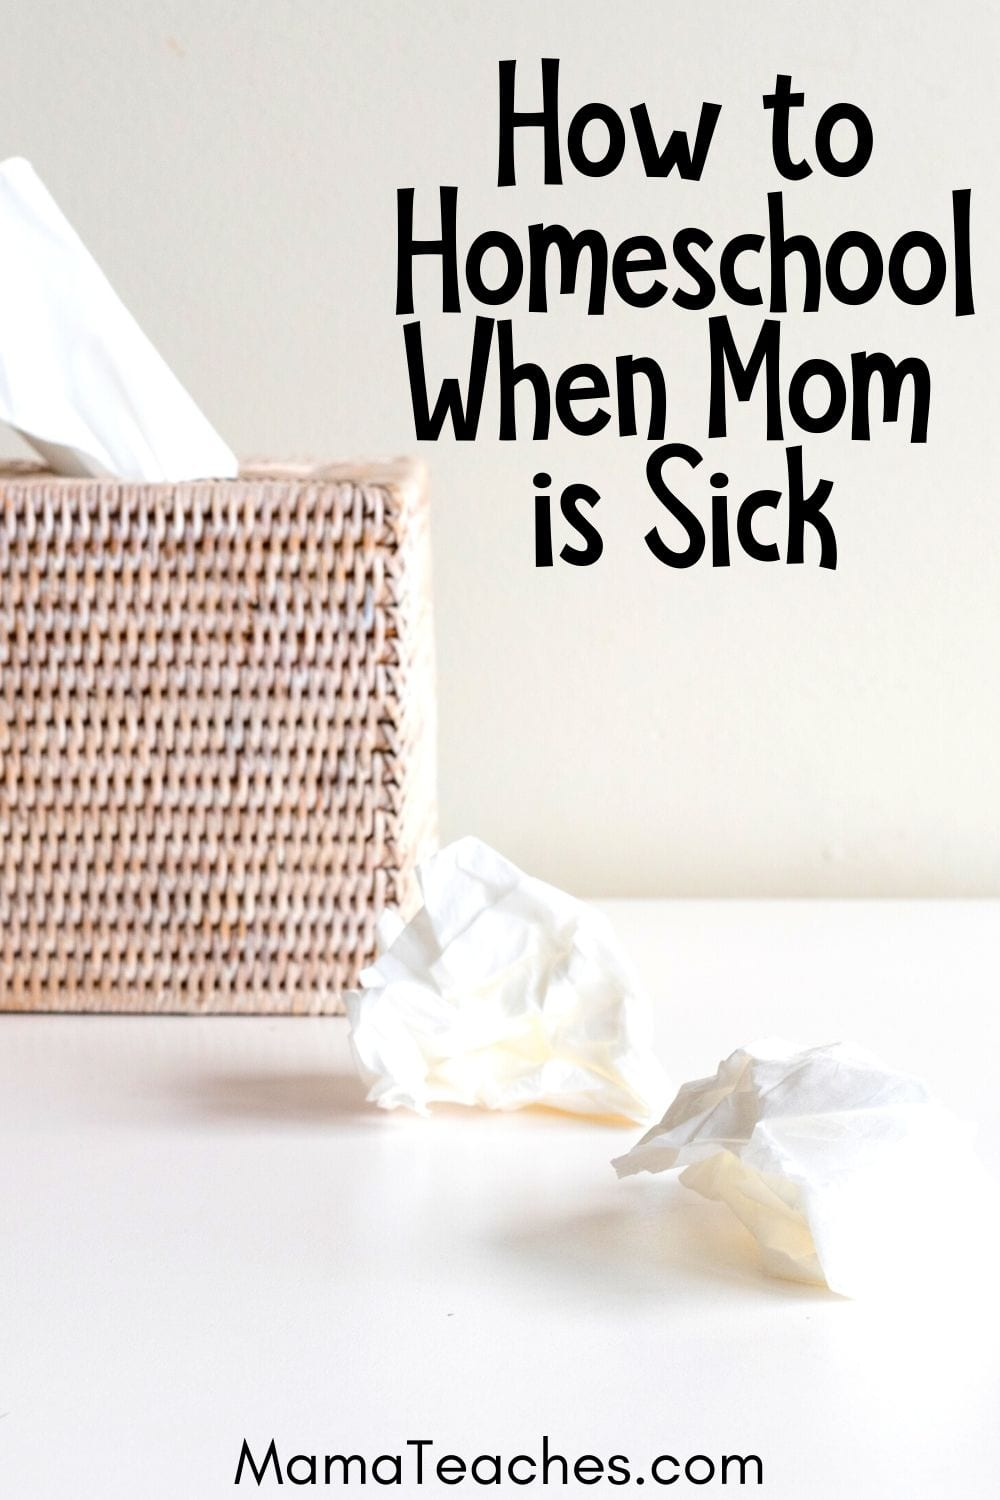 How to Homeschool When Mom is Sick